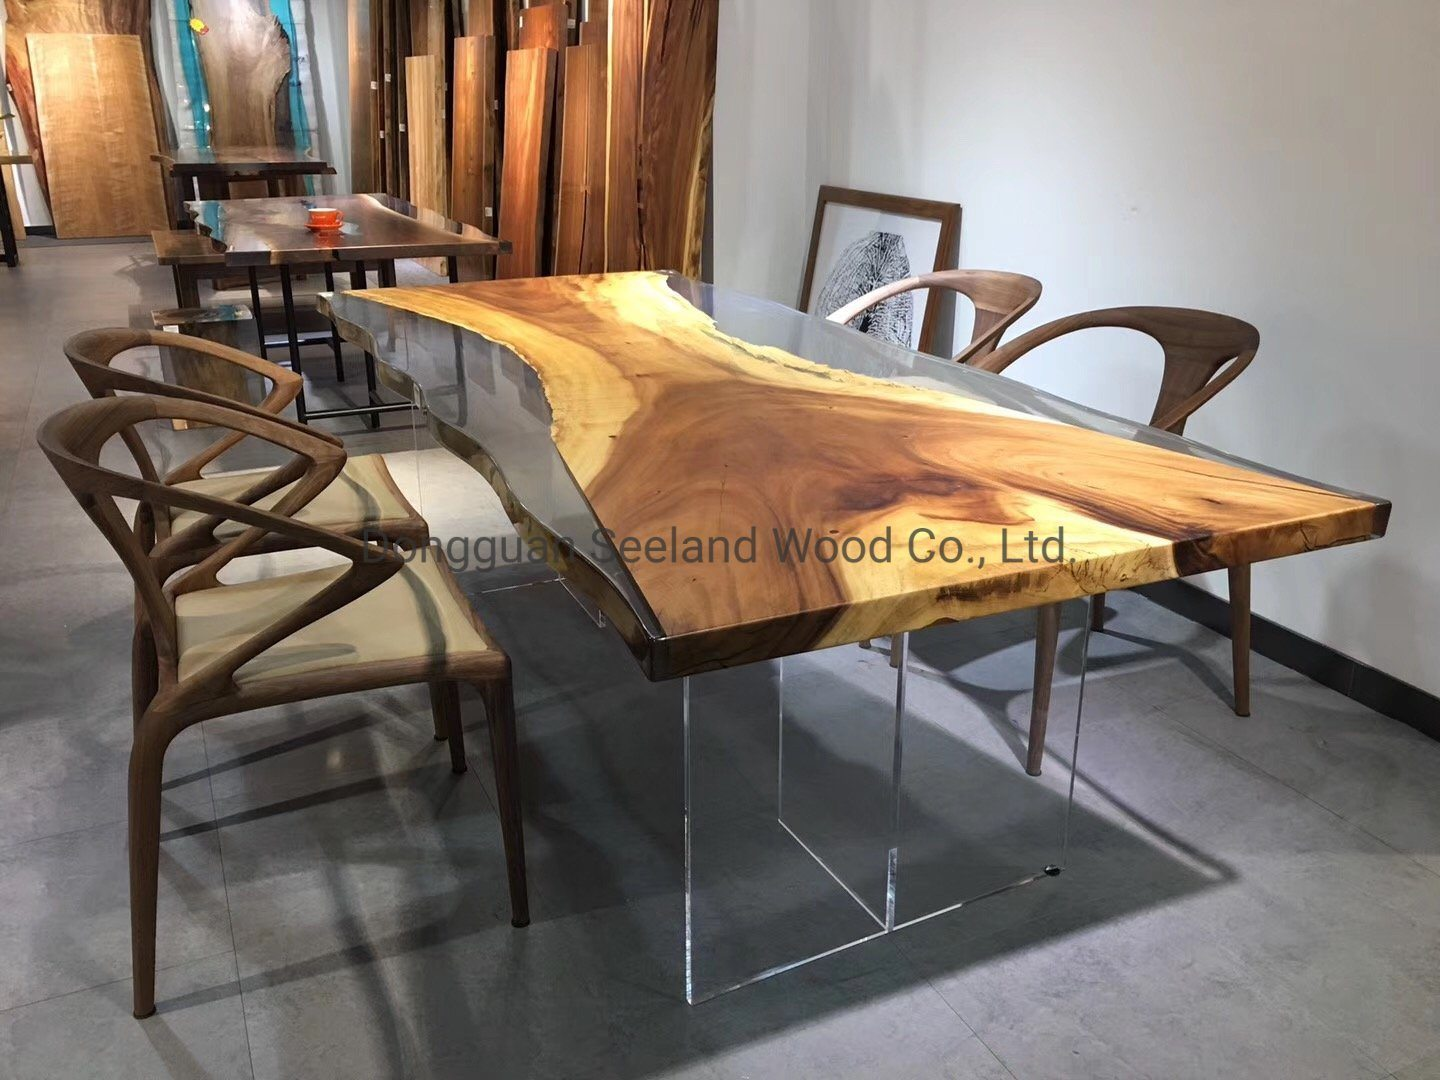 hot item oak slab wooden countertop round table top entrance table console table with live edge